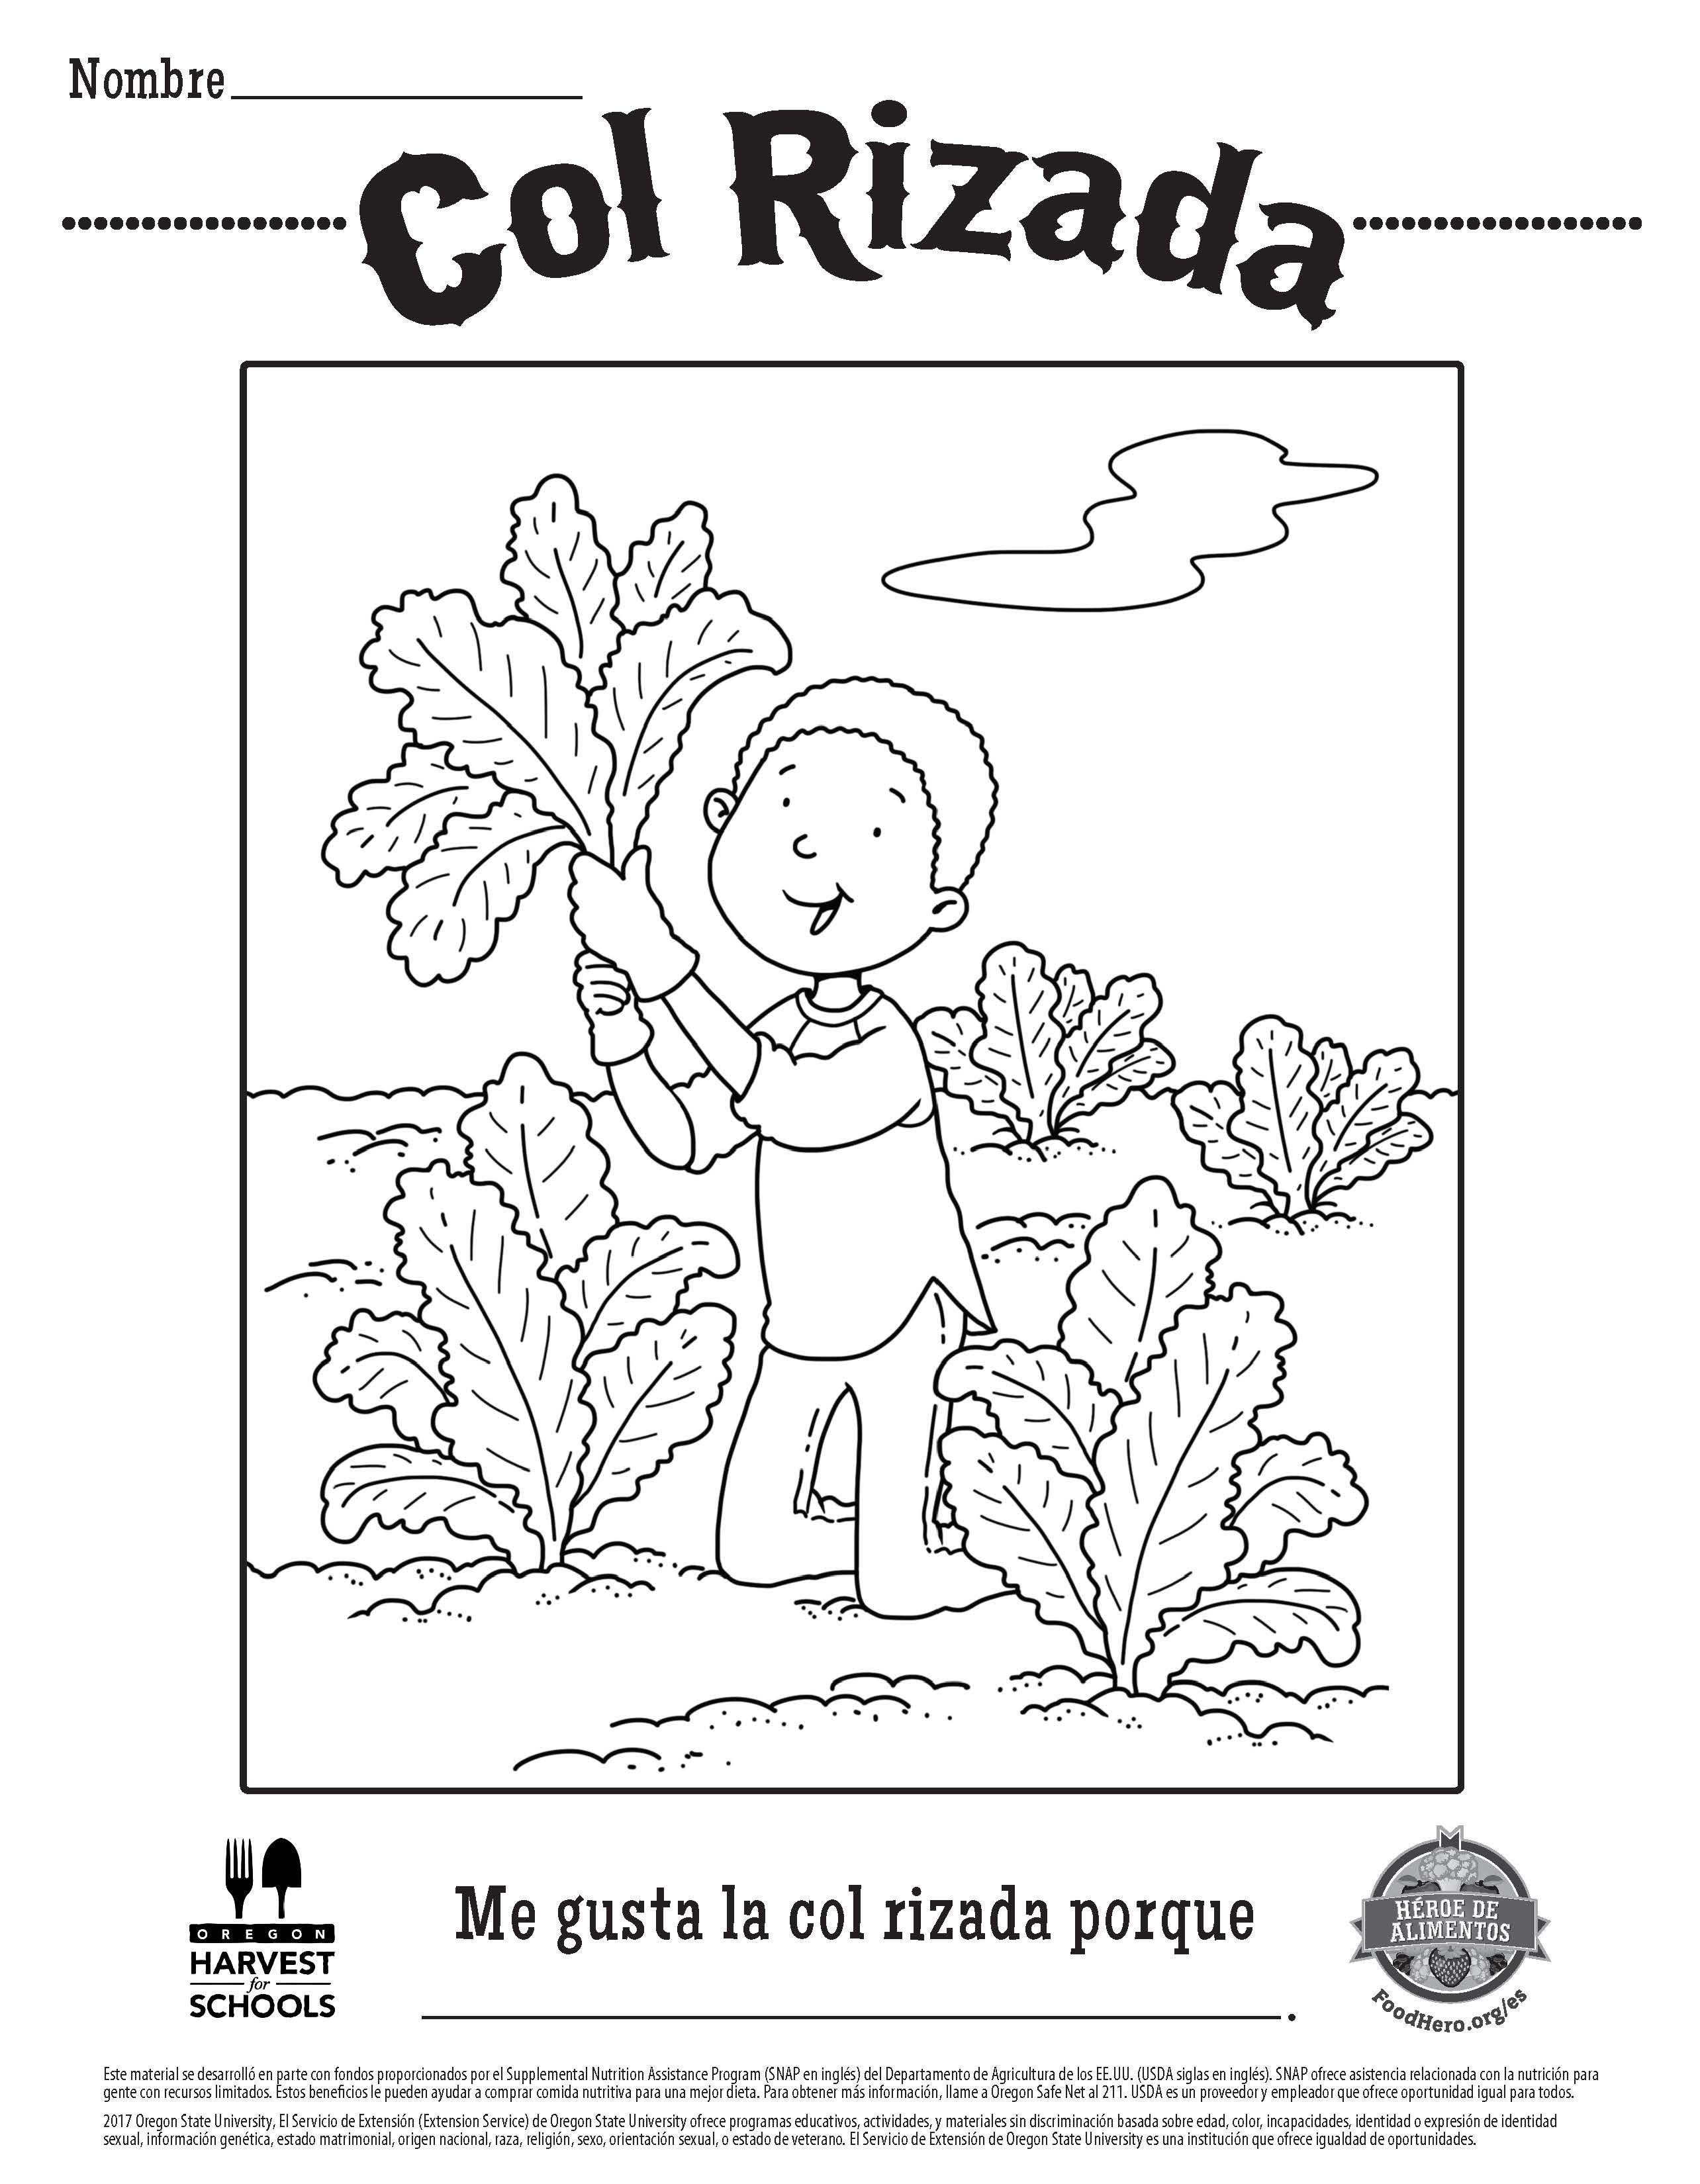 Food Hero Free Printable Children S Coloring Sheet Kale In Spanish